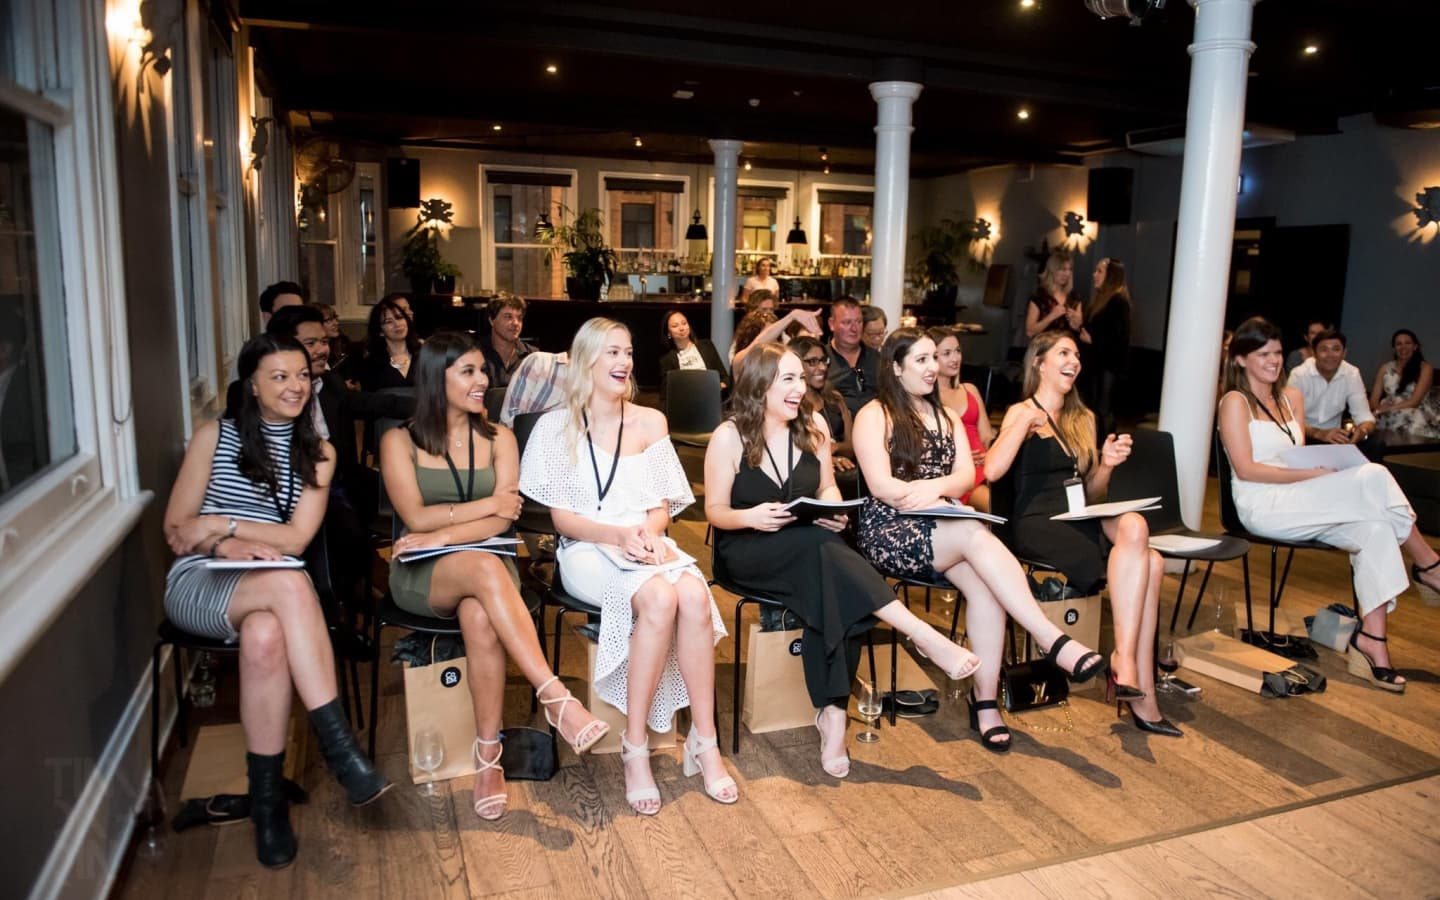 How studying at the College of Event Management prepared me for my first role at